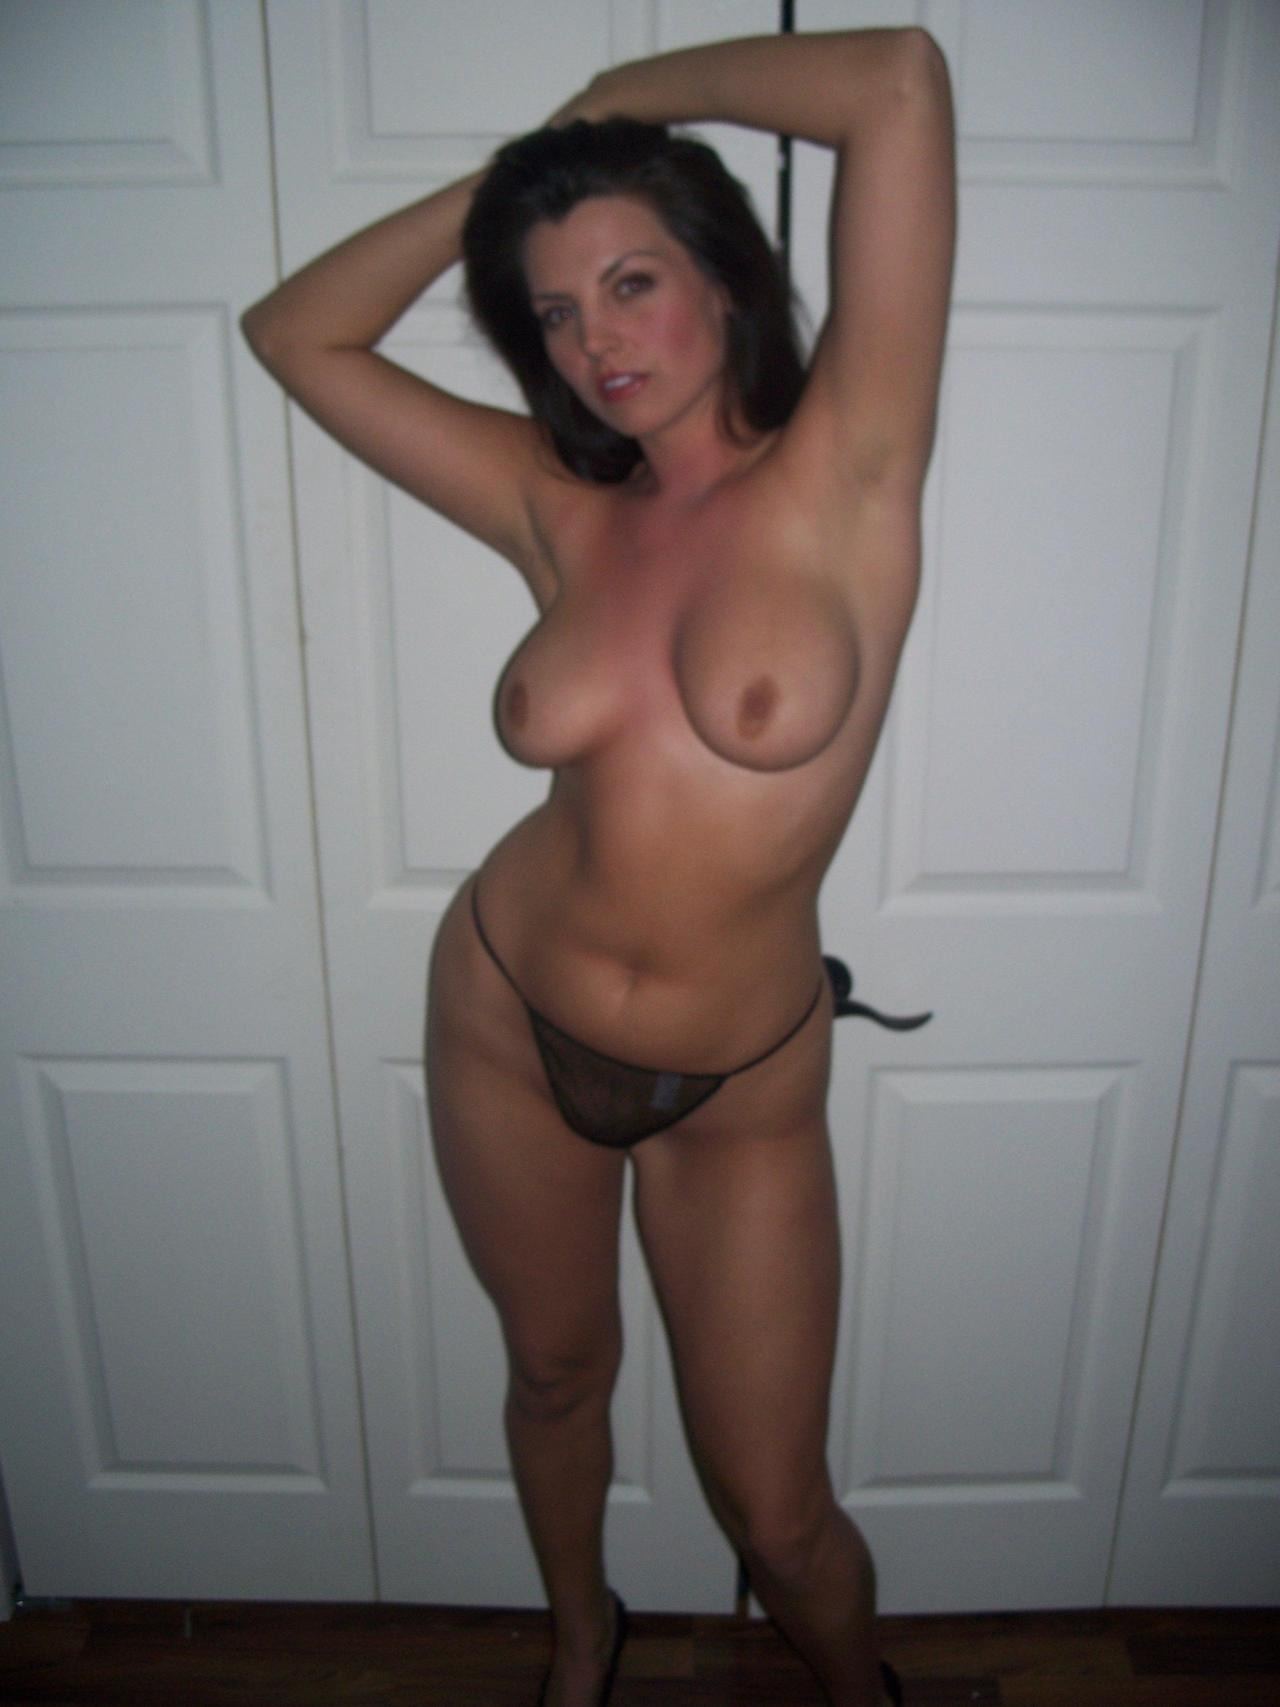 Free adult texting sites